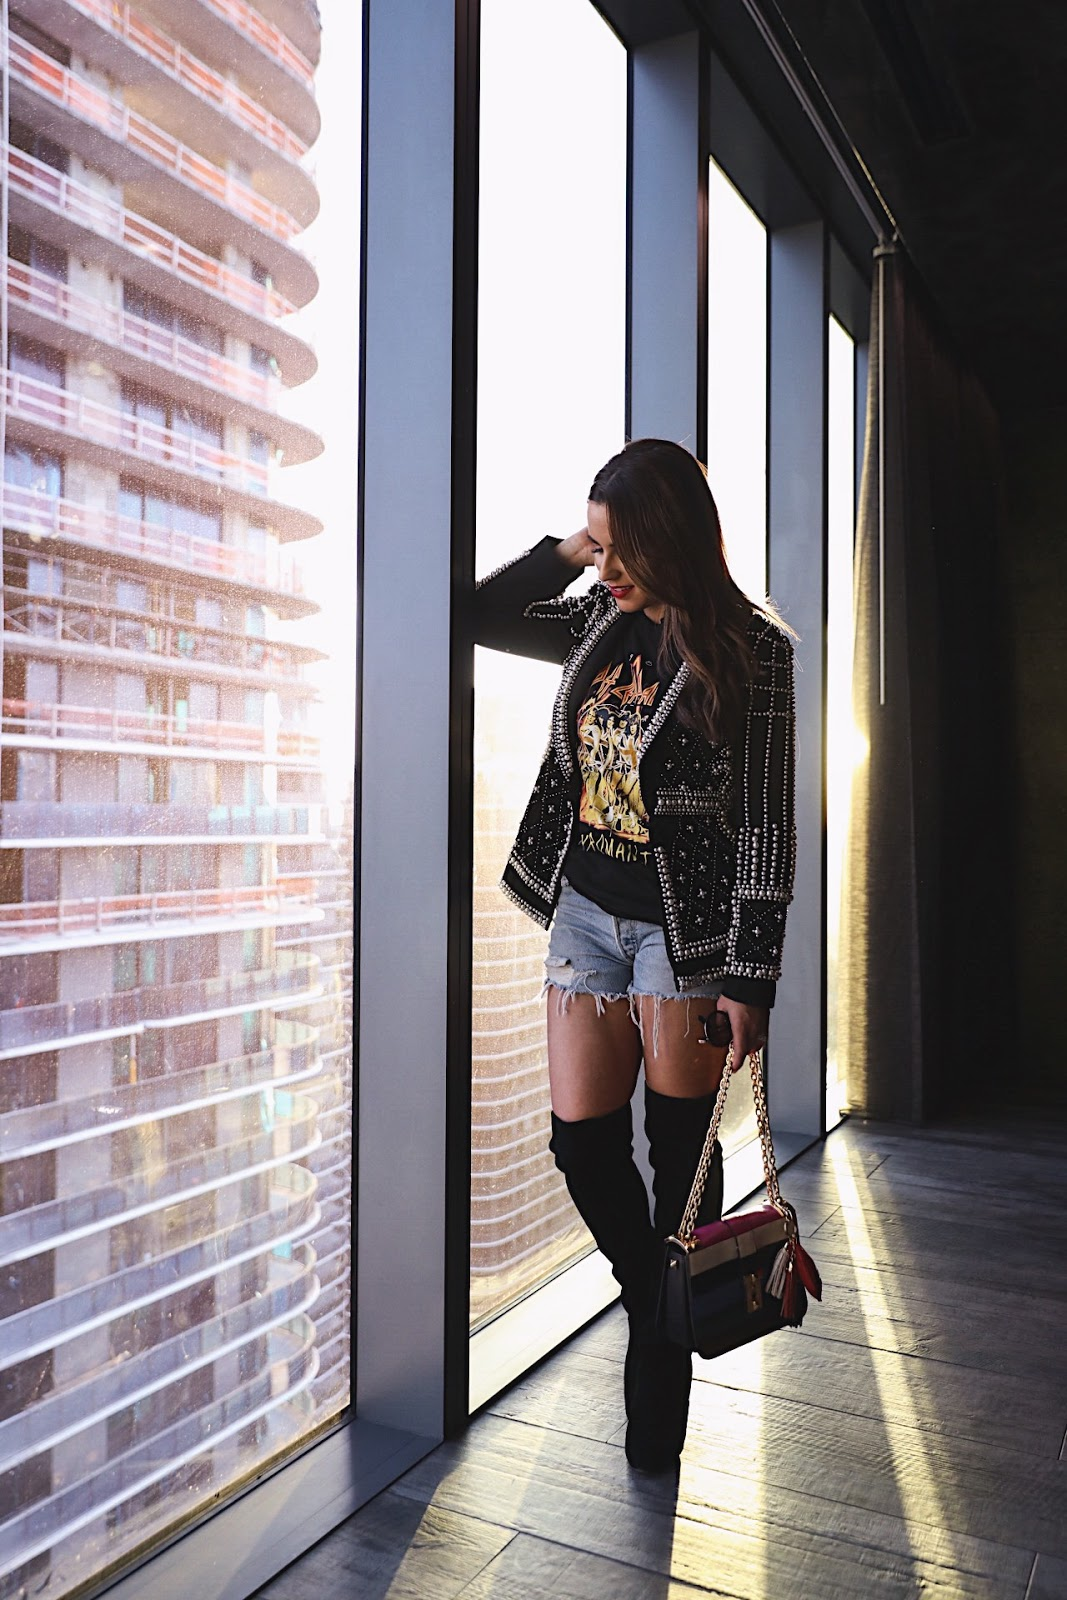 Fashion blogger Kelly Saks wears pearl blazer and marina over the knee boots. Street Style inspiration.